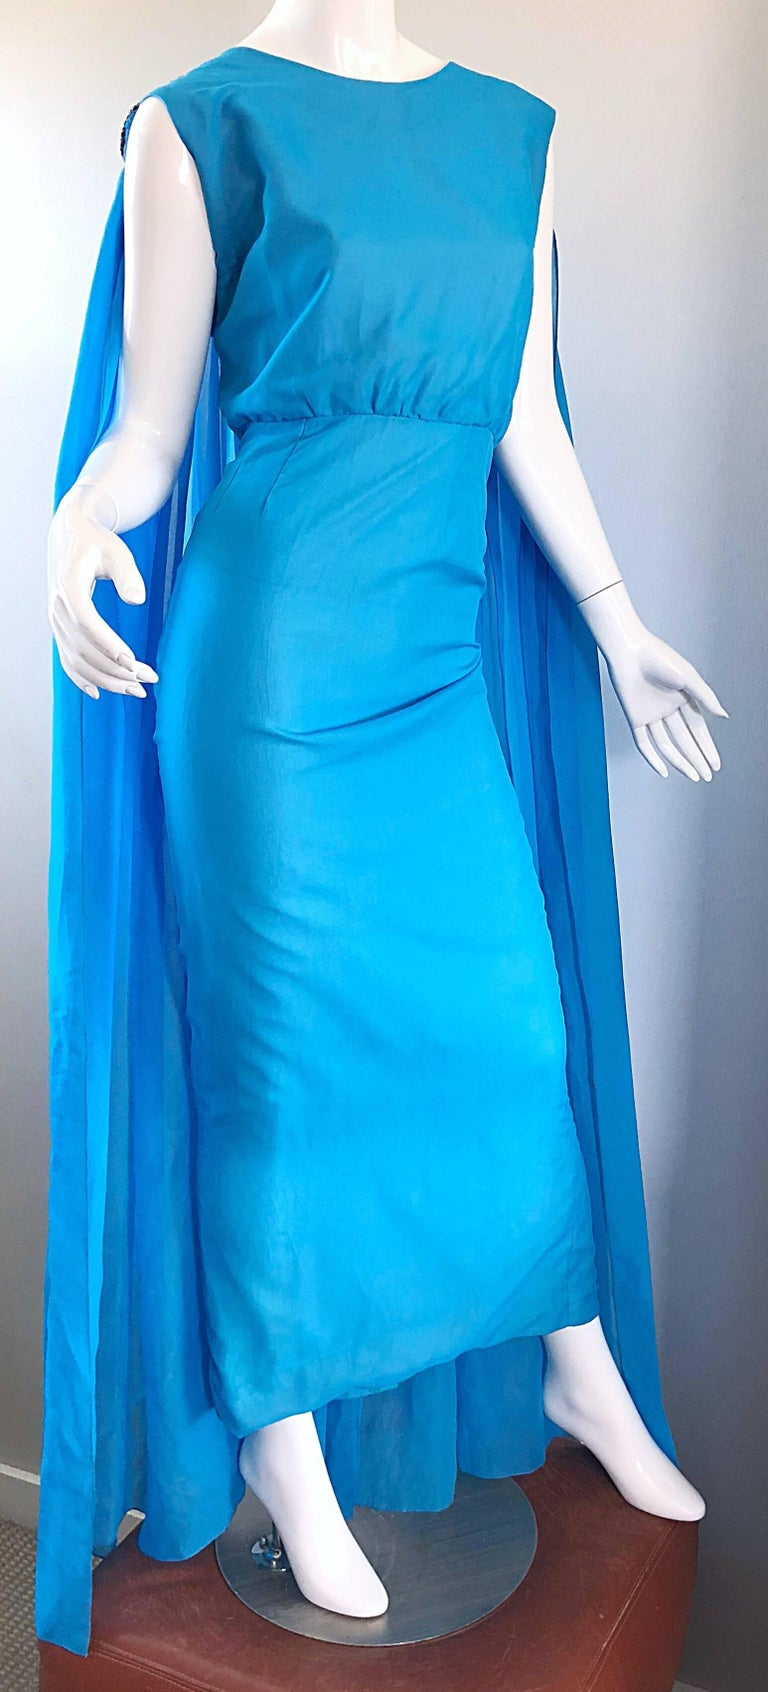 Incredible 1960s Turquoise Blue Chiffon Rhinestone Encrusted Vintage Cape Gown For Sale 2